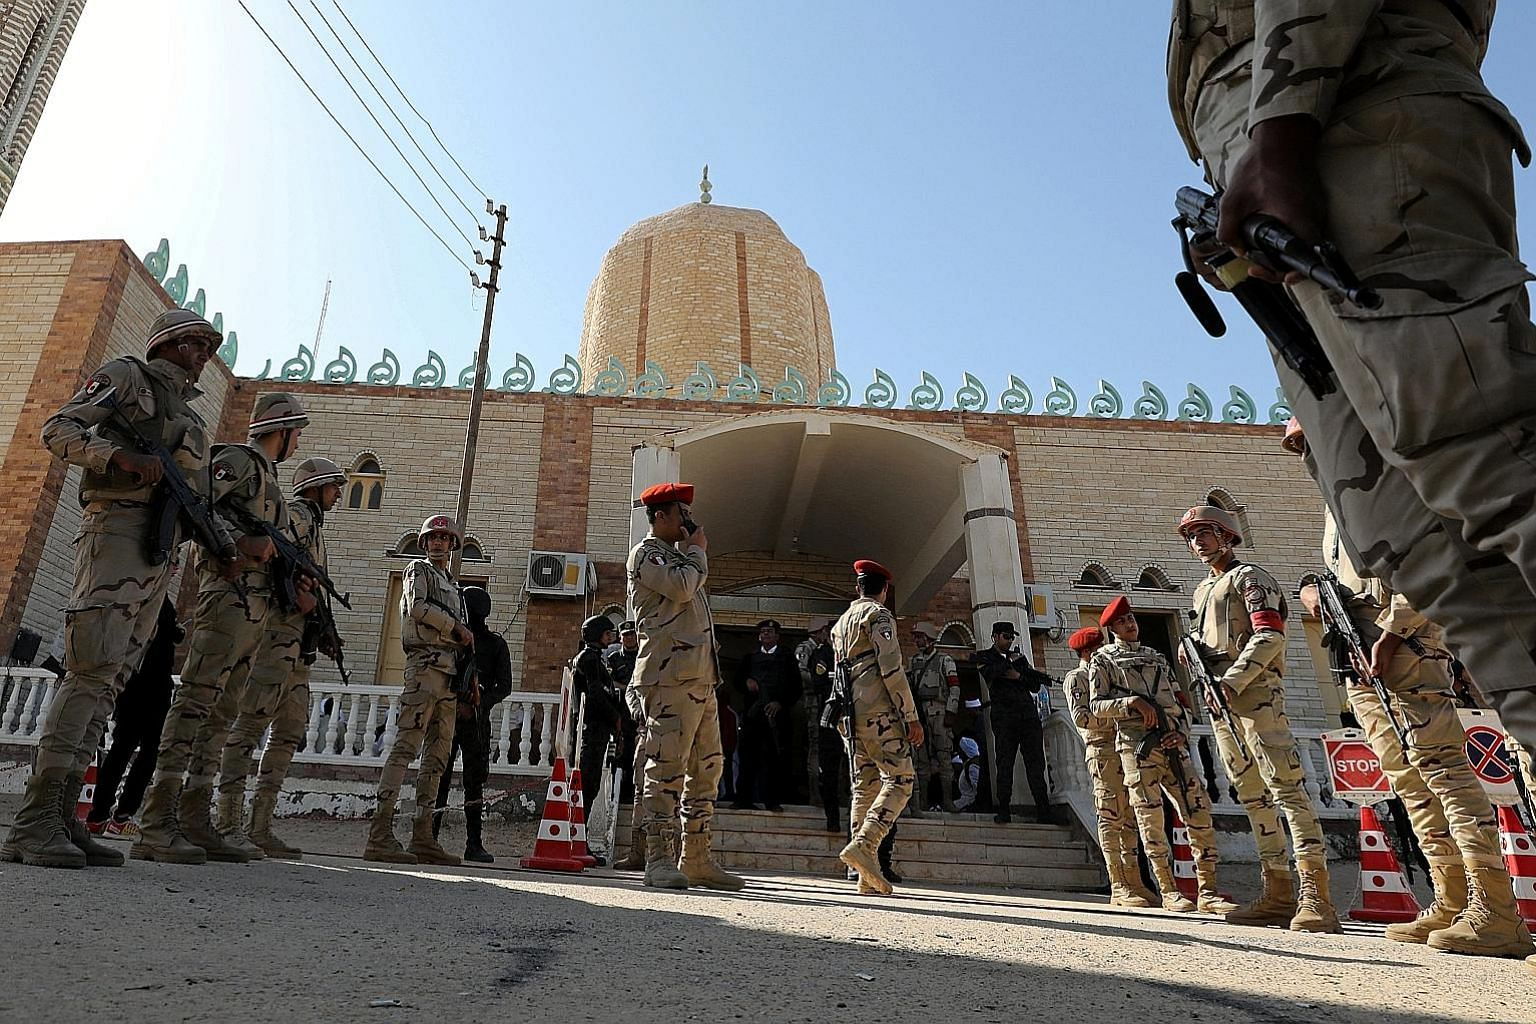 Military security members patrolling outside the Al Rawdah mosque after a terror attack in Bir Al-Abed, in the North Sinai, Egypt, last year. Egypt and Israel are now secret allies in a covert war against a common foe - the militants - after being en